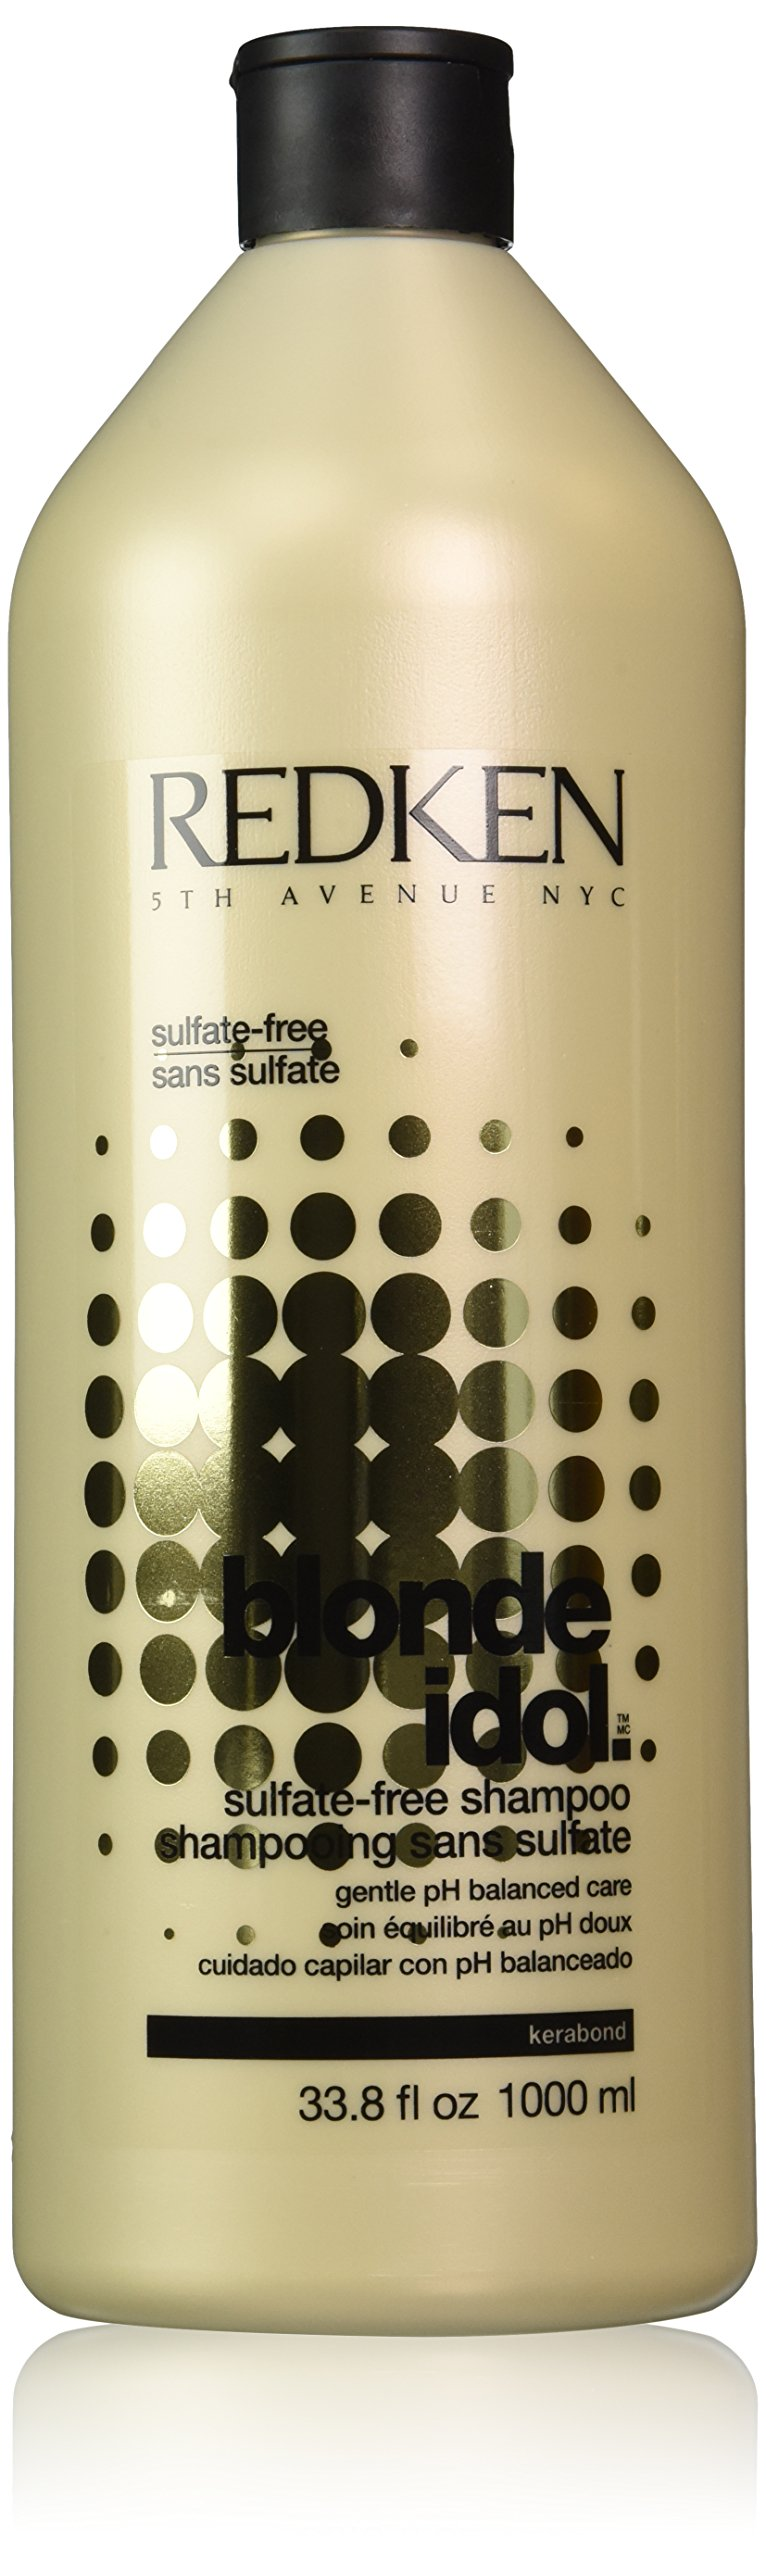 Redken Blonde Idol Sulfate-Free Shampoo for Unisex, 33.8 Ounce by REDKEN